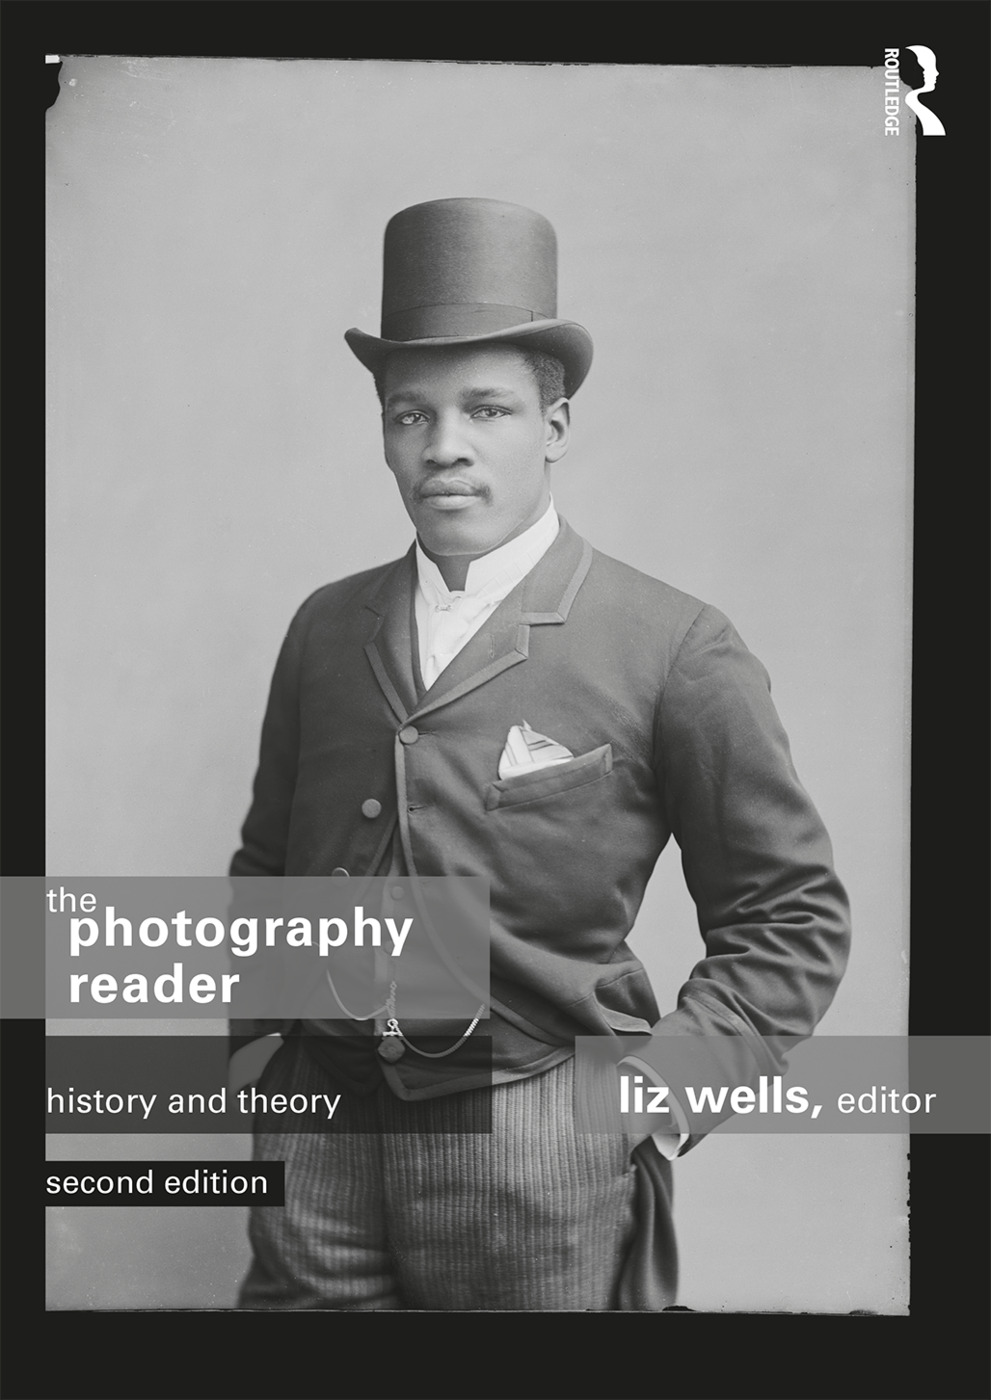 The Photography Reader: History and Theory book cover